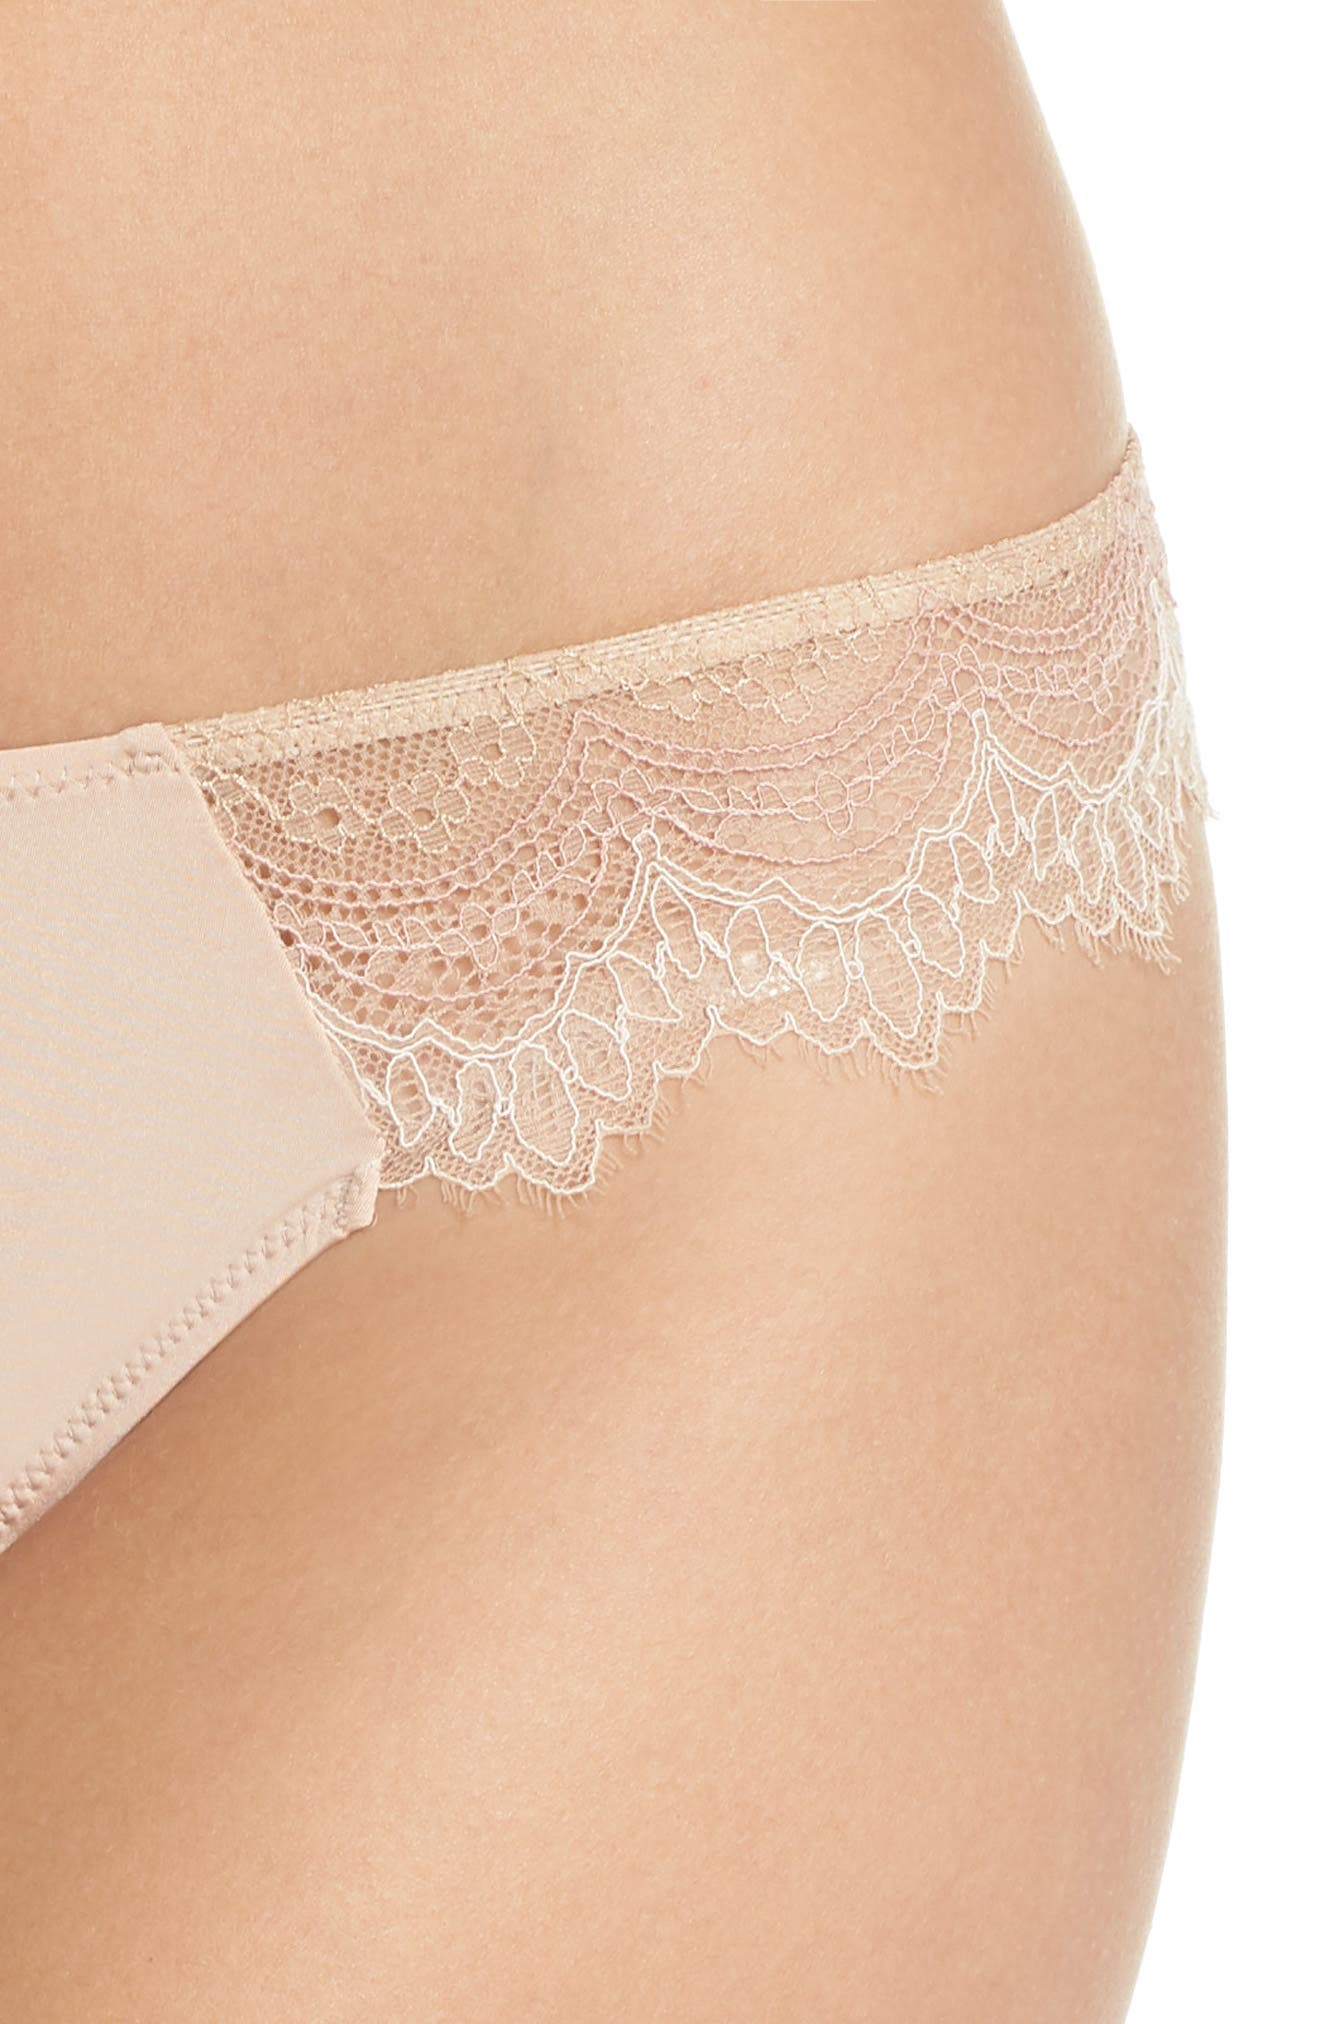 Wink Worthy Thong,                             Alternate thumbnail 4, color,                             210